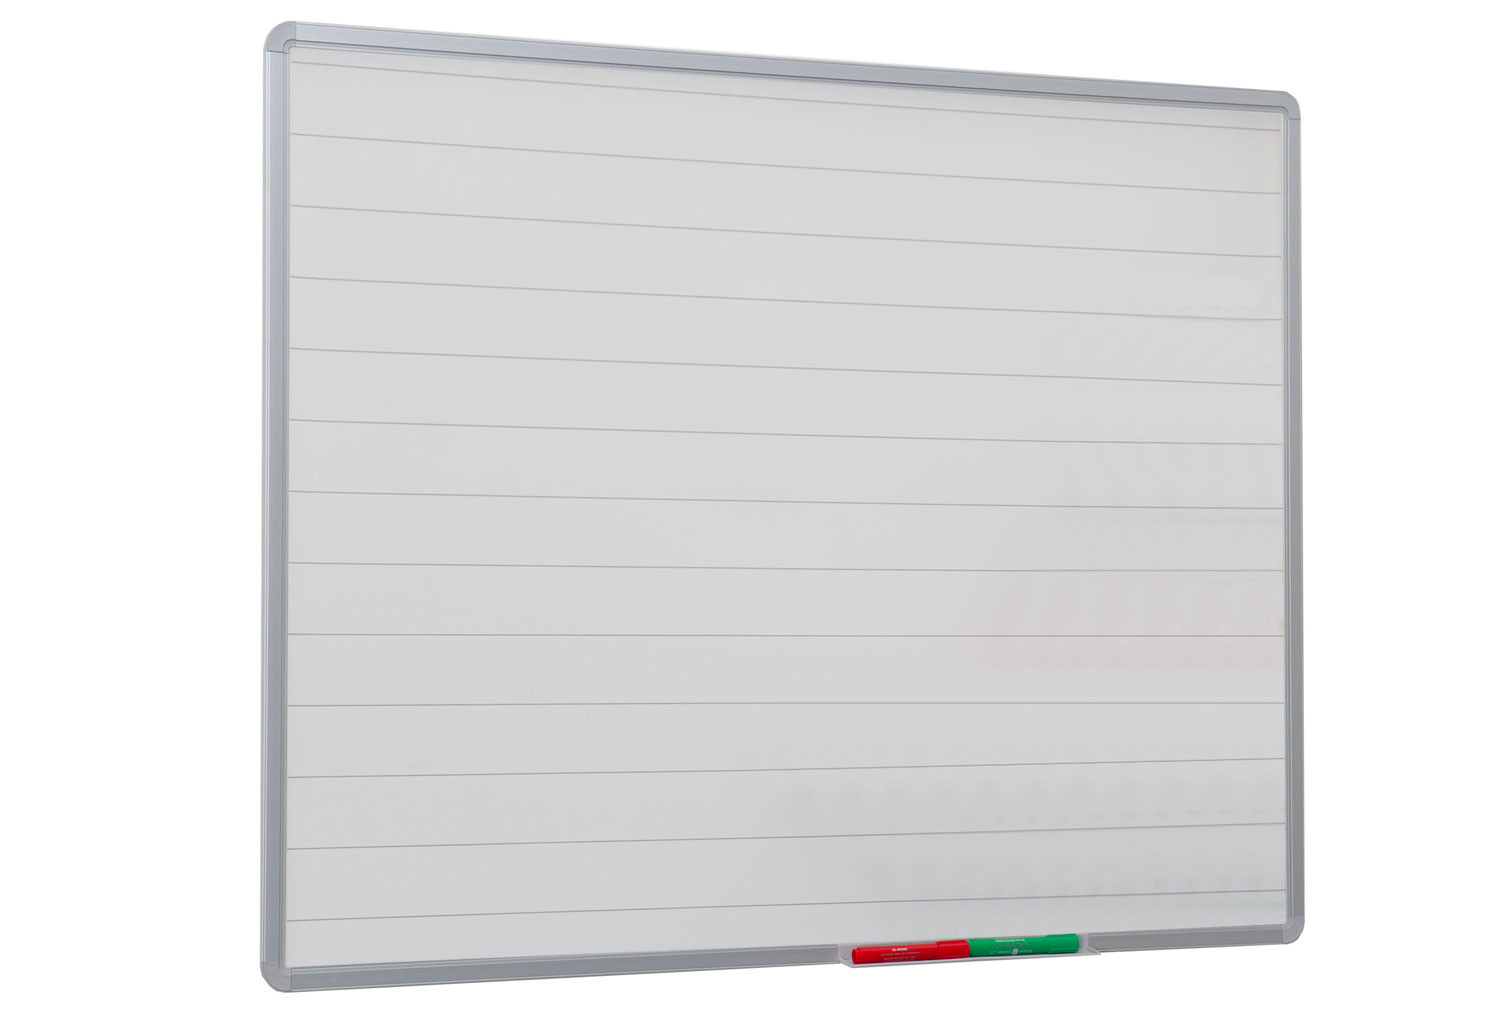 Non-Magnetic Writing Board With 75mm Lines